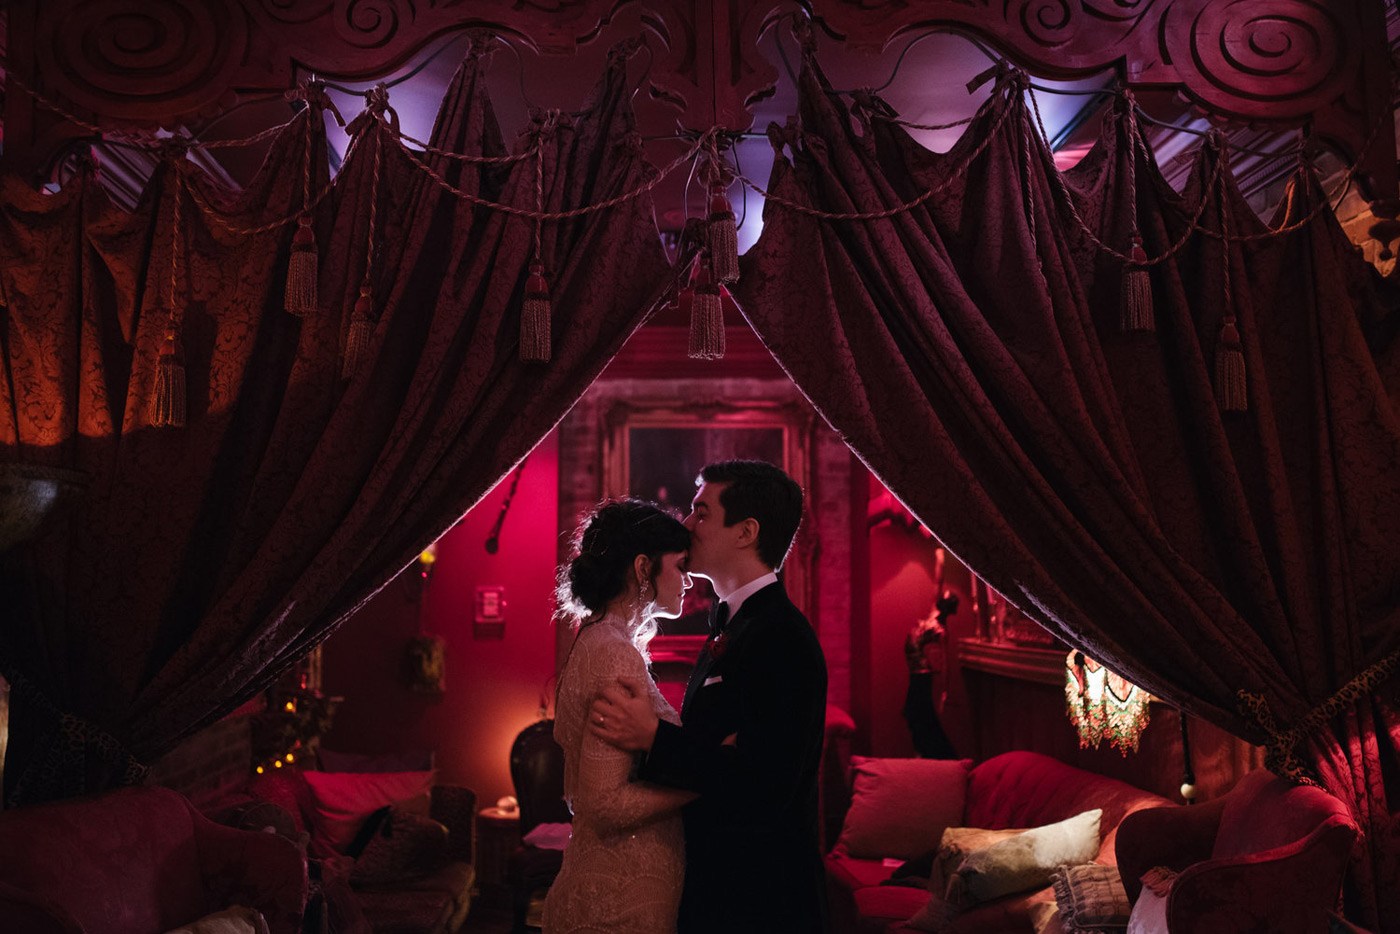 Groom kissing bride in dark red lit room with lush curtains above